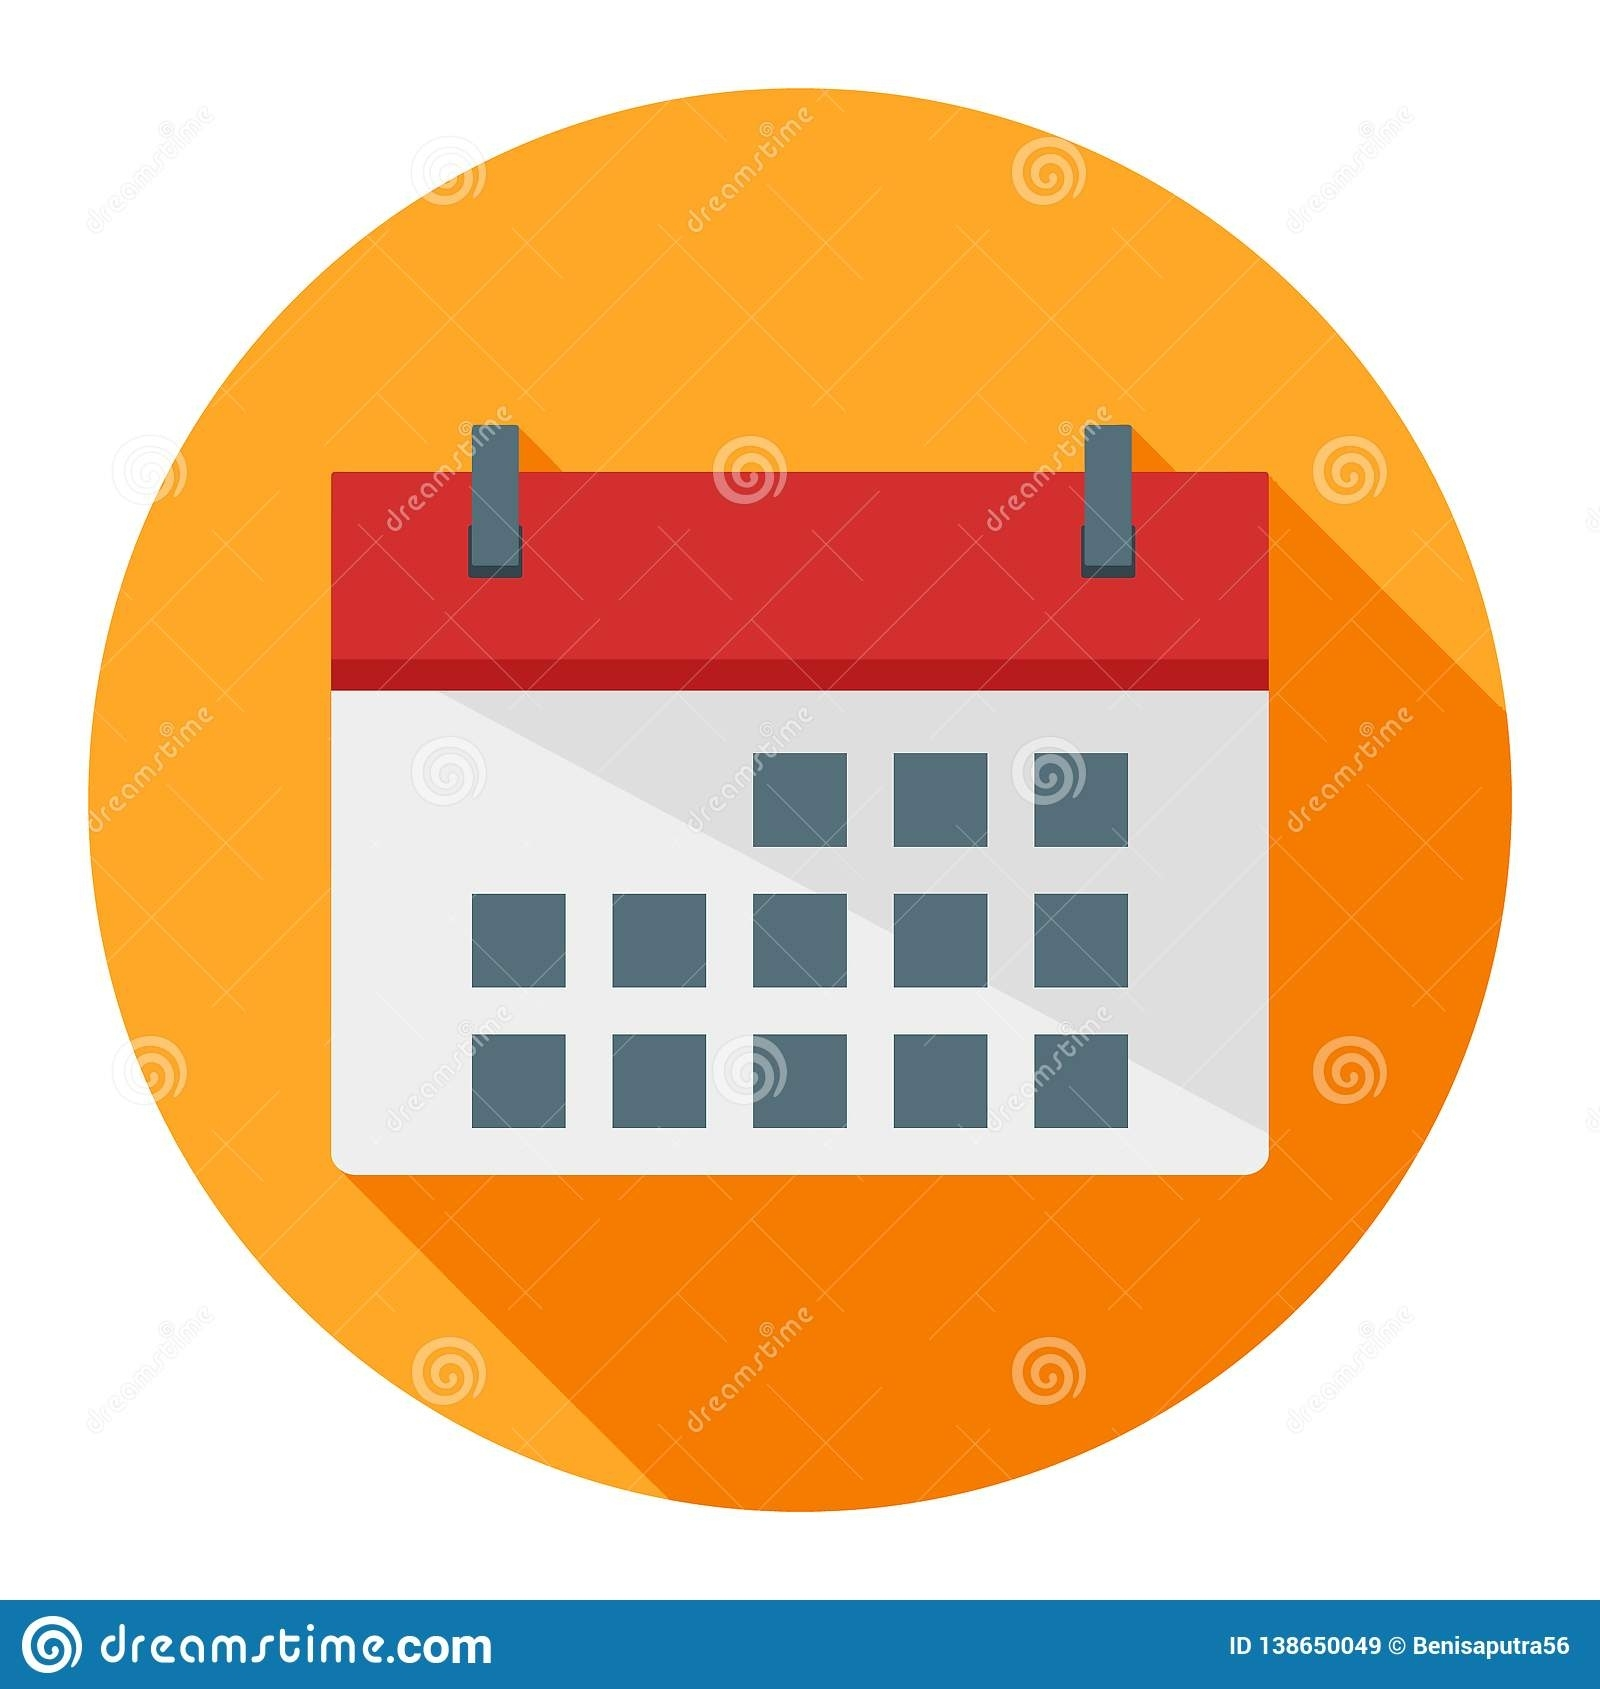 Calendar Business Flat Icon, Date, Event Stock Vector - Illustration Calendar Date Event Icon